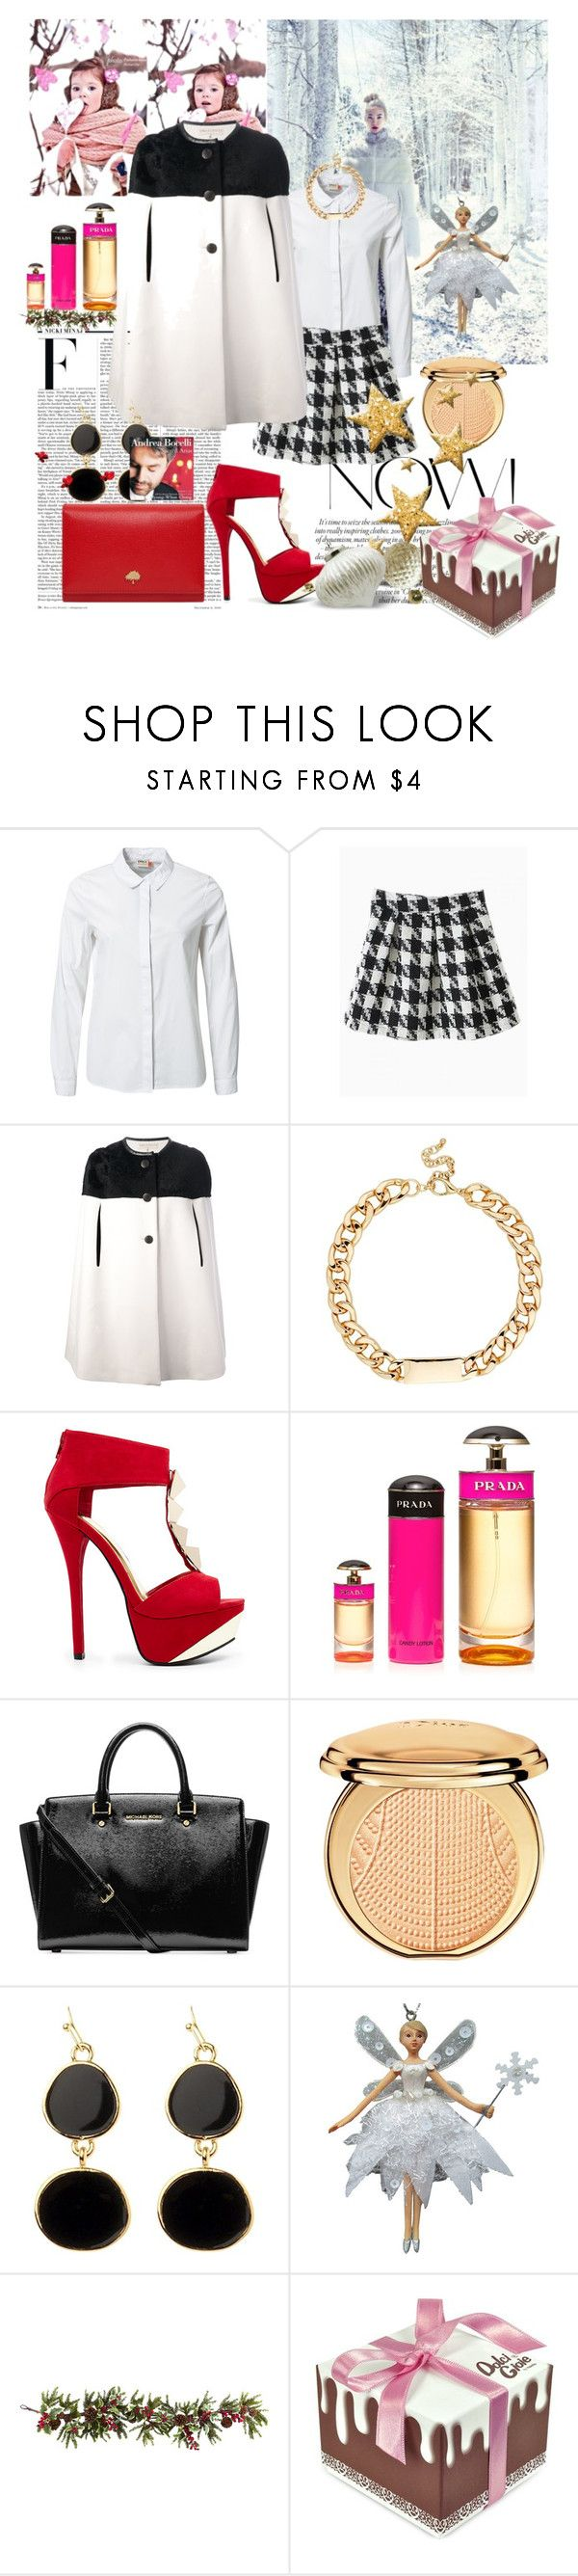 """""""DECEMBER CAPE"""" by eiliana ❤ liked on Polyvore featuring Nicki Minaj, Lauren Conrad, ONLY, Emilio Pucci, Red Herring, 2b bebe, Prada, Michael Kors, Christian Dior and Adele Marie"""